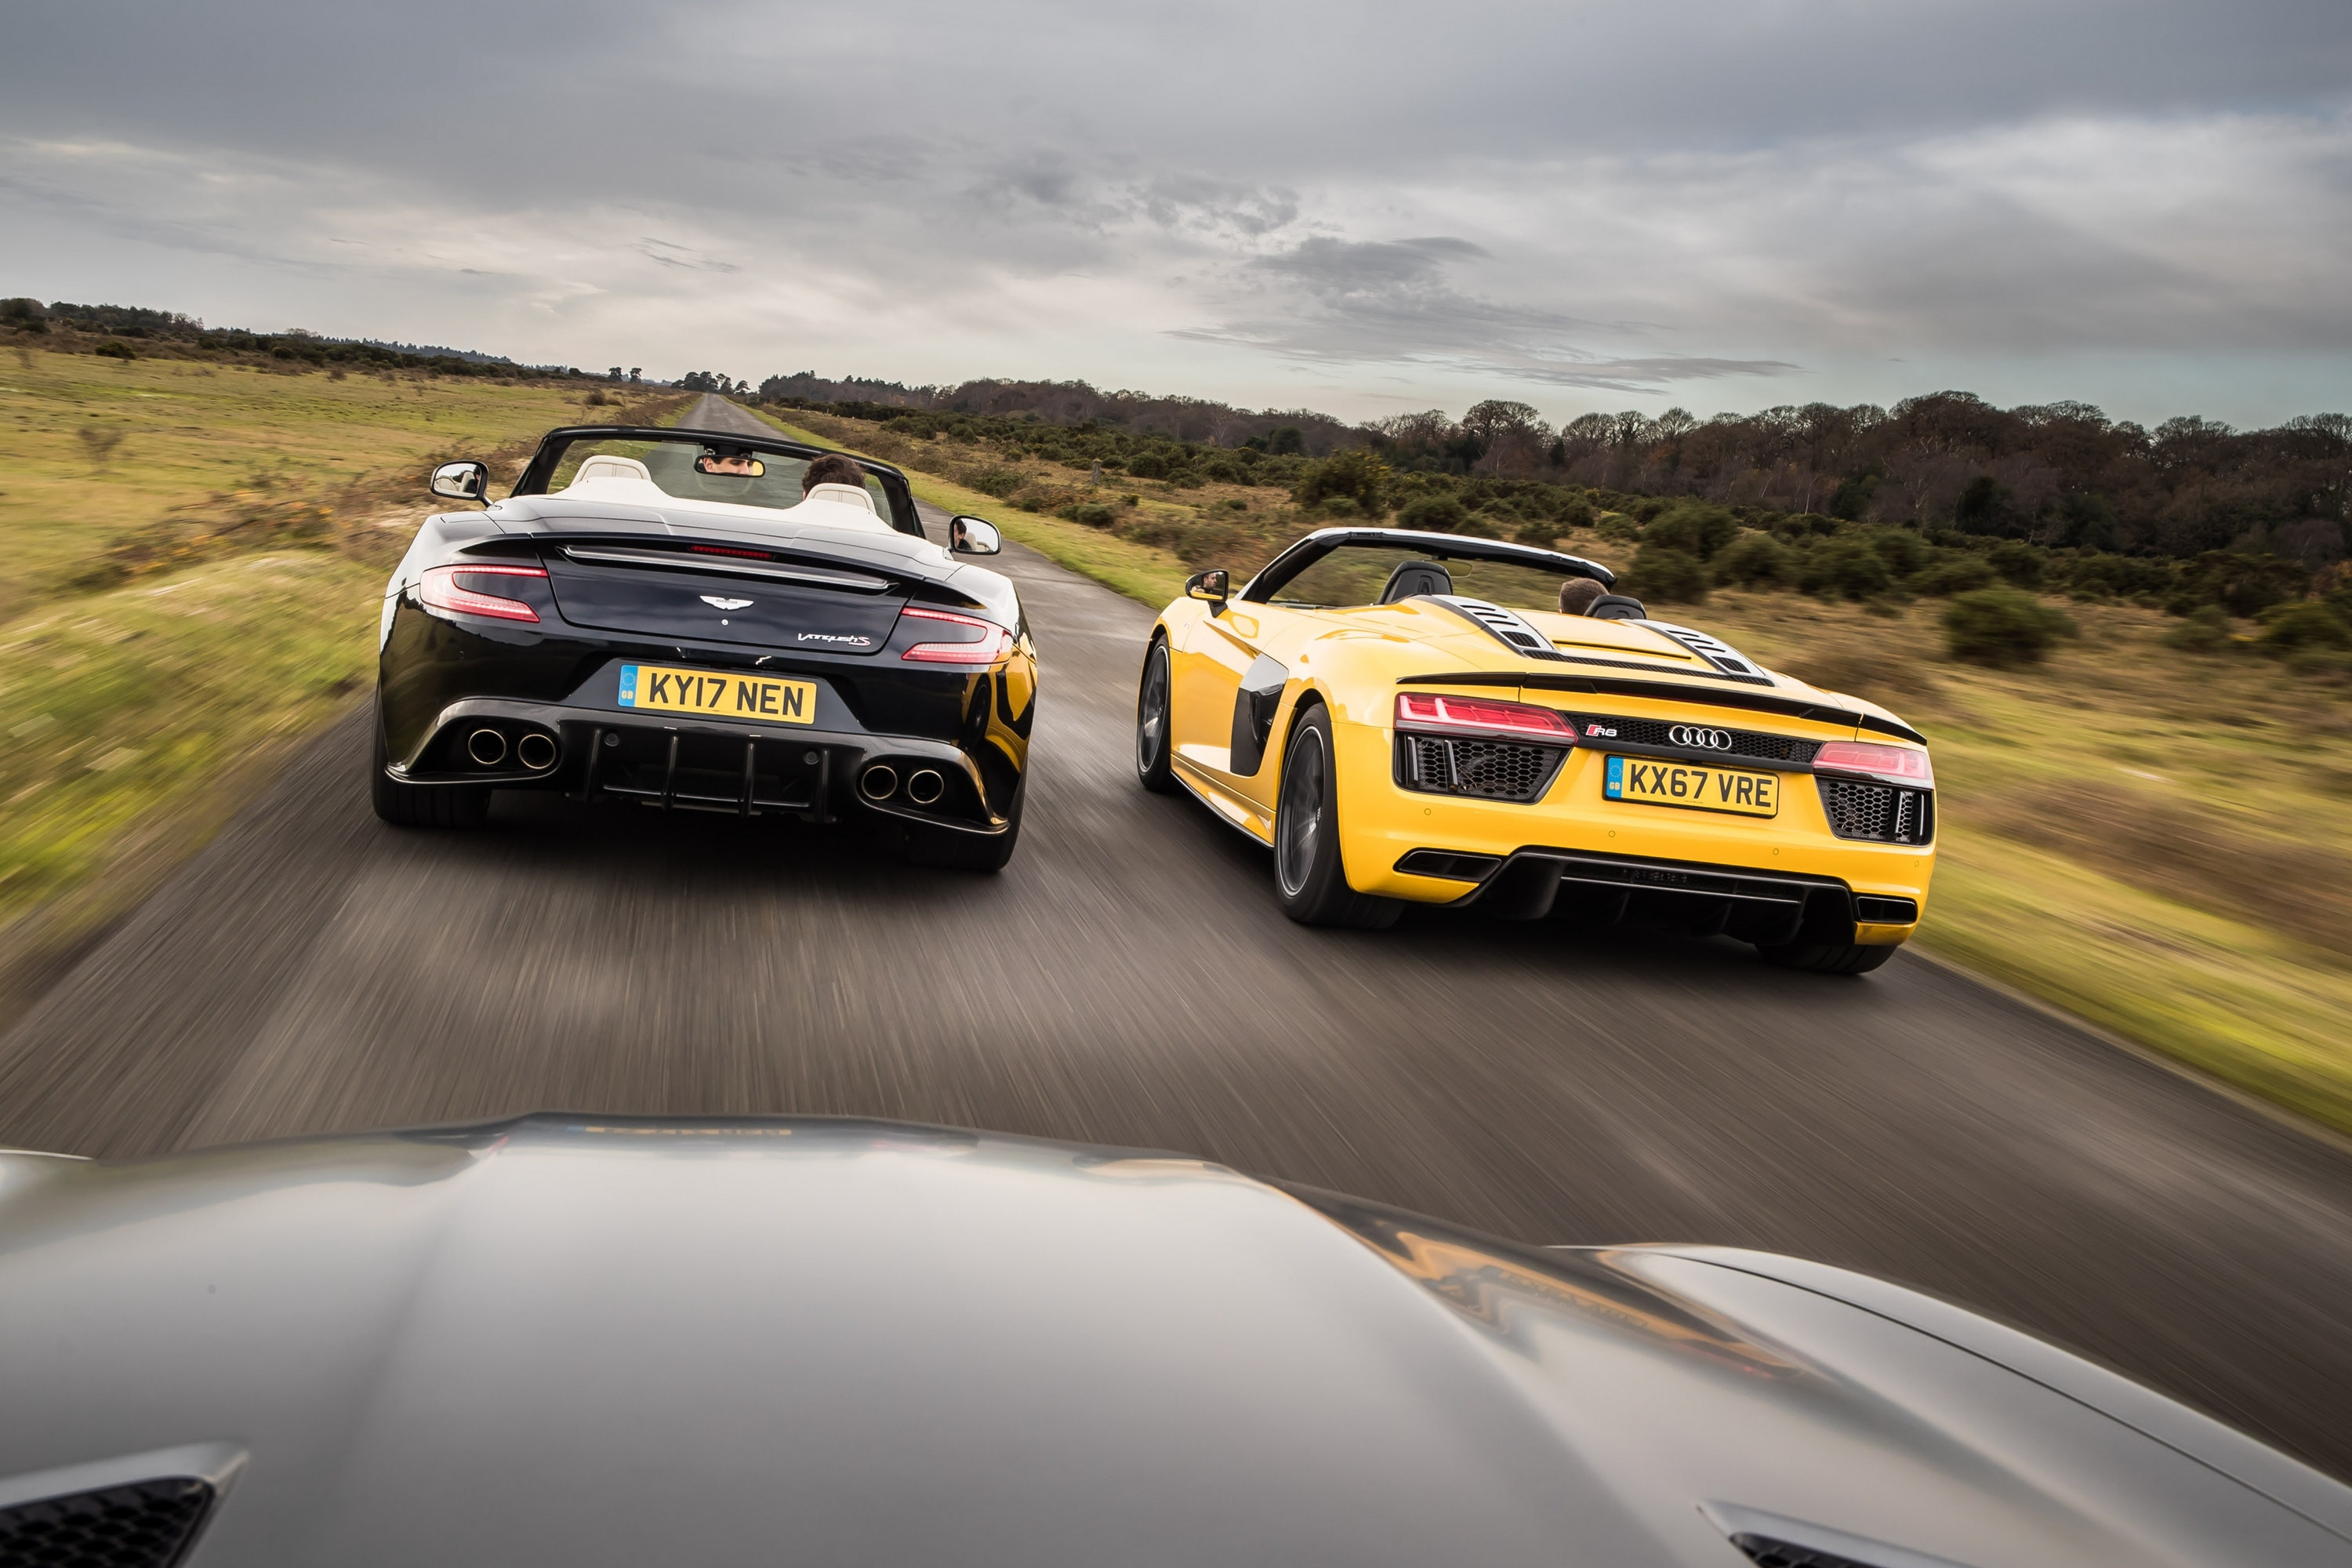 Aston Martin Vanquish and Audi R8 Spyder driving away